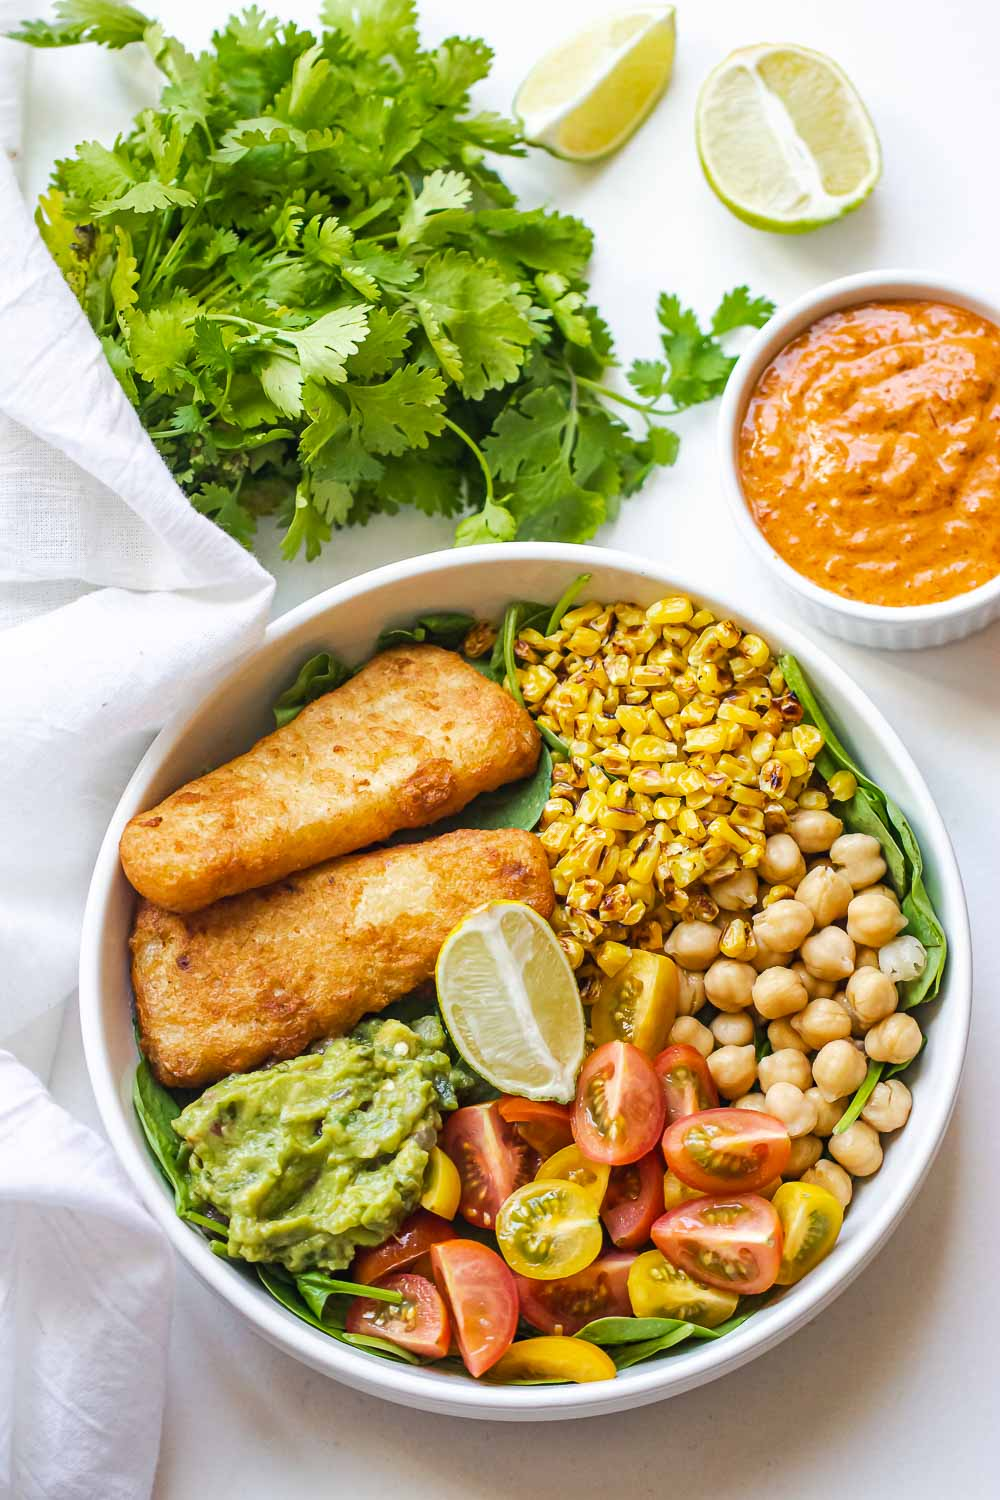 Quickly make this colorful and filling homemade Chipotle Fish Bowl. It's completely flavorful, can be ready in under 30 minutes, and better than you favorite chipotle bowl.